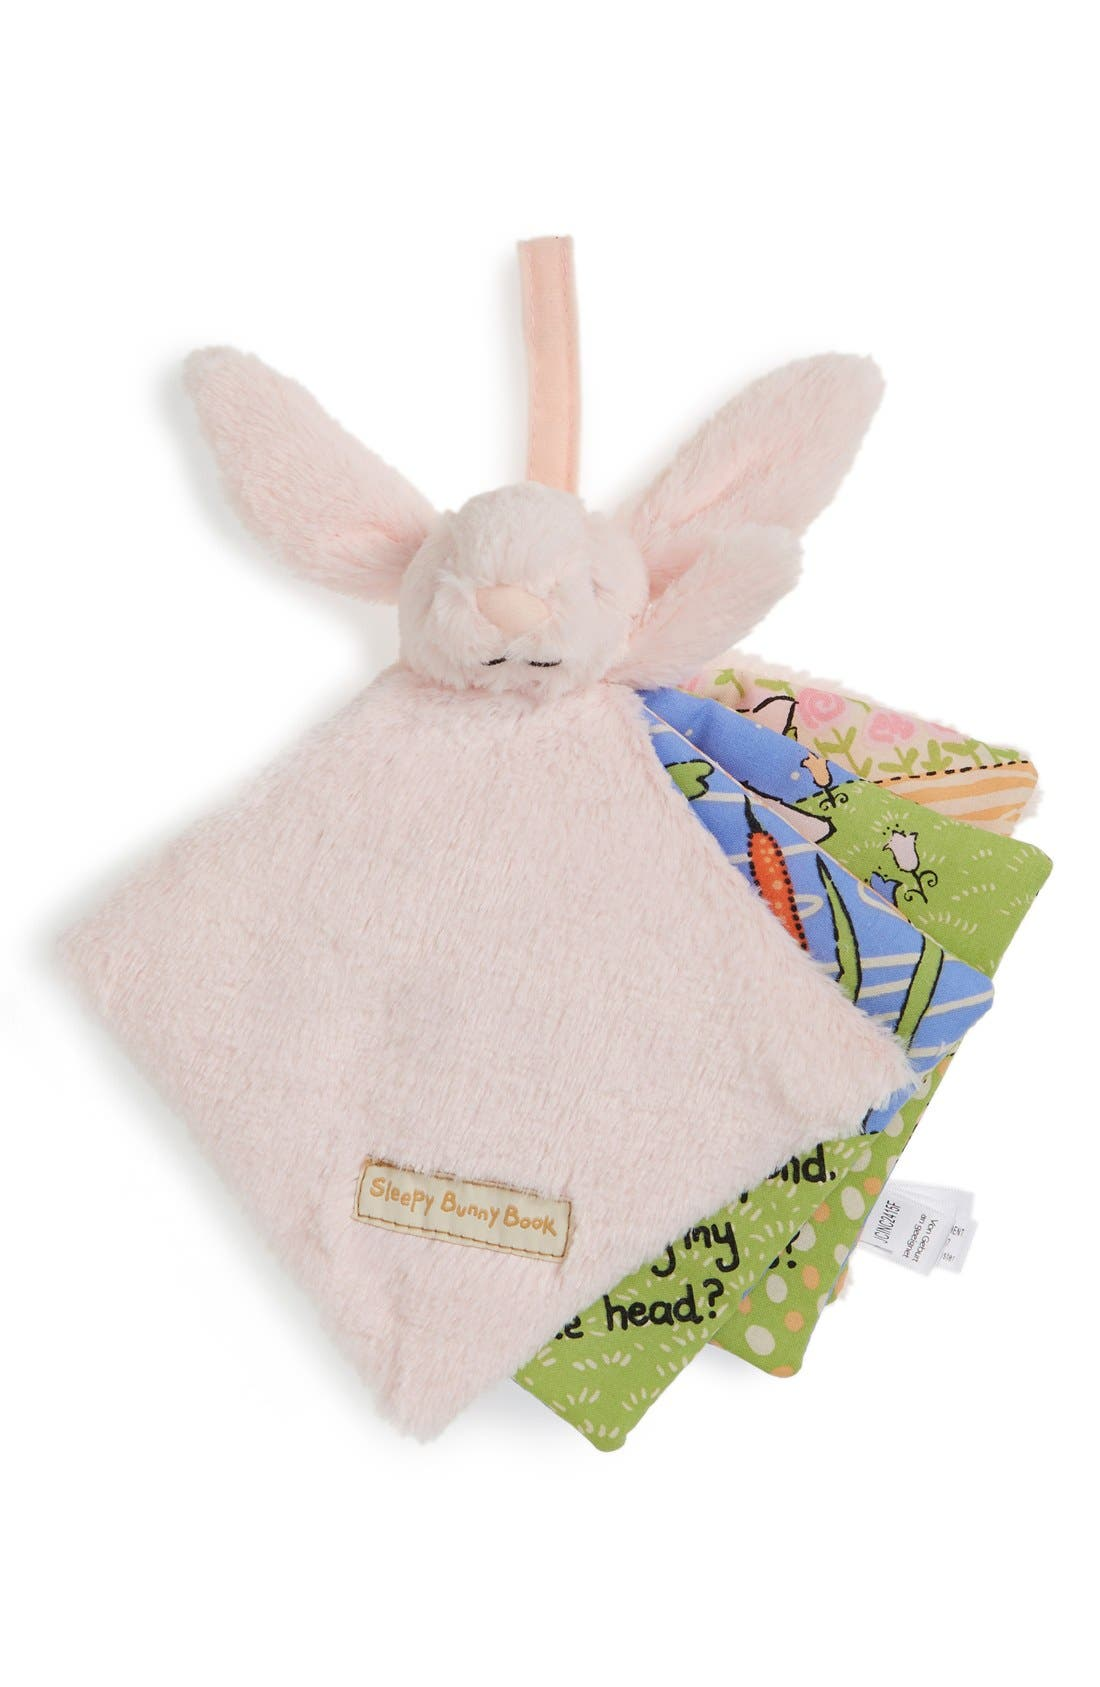 'Sleepy Bunny' Soft Fabric Book,                         Main,                         color, Pink